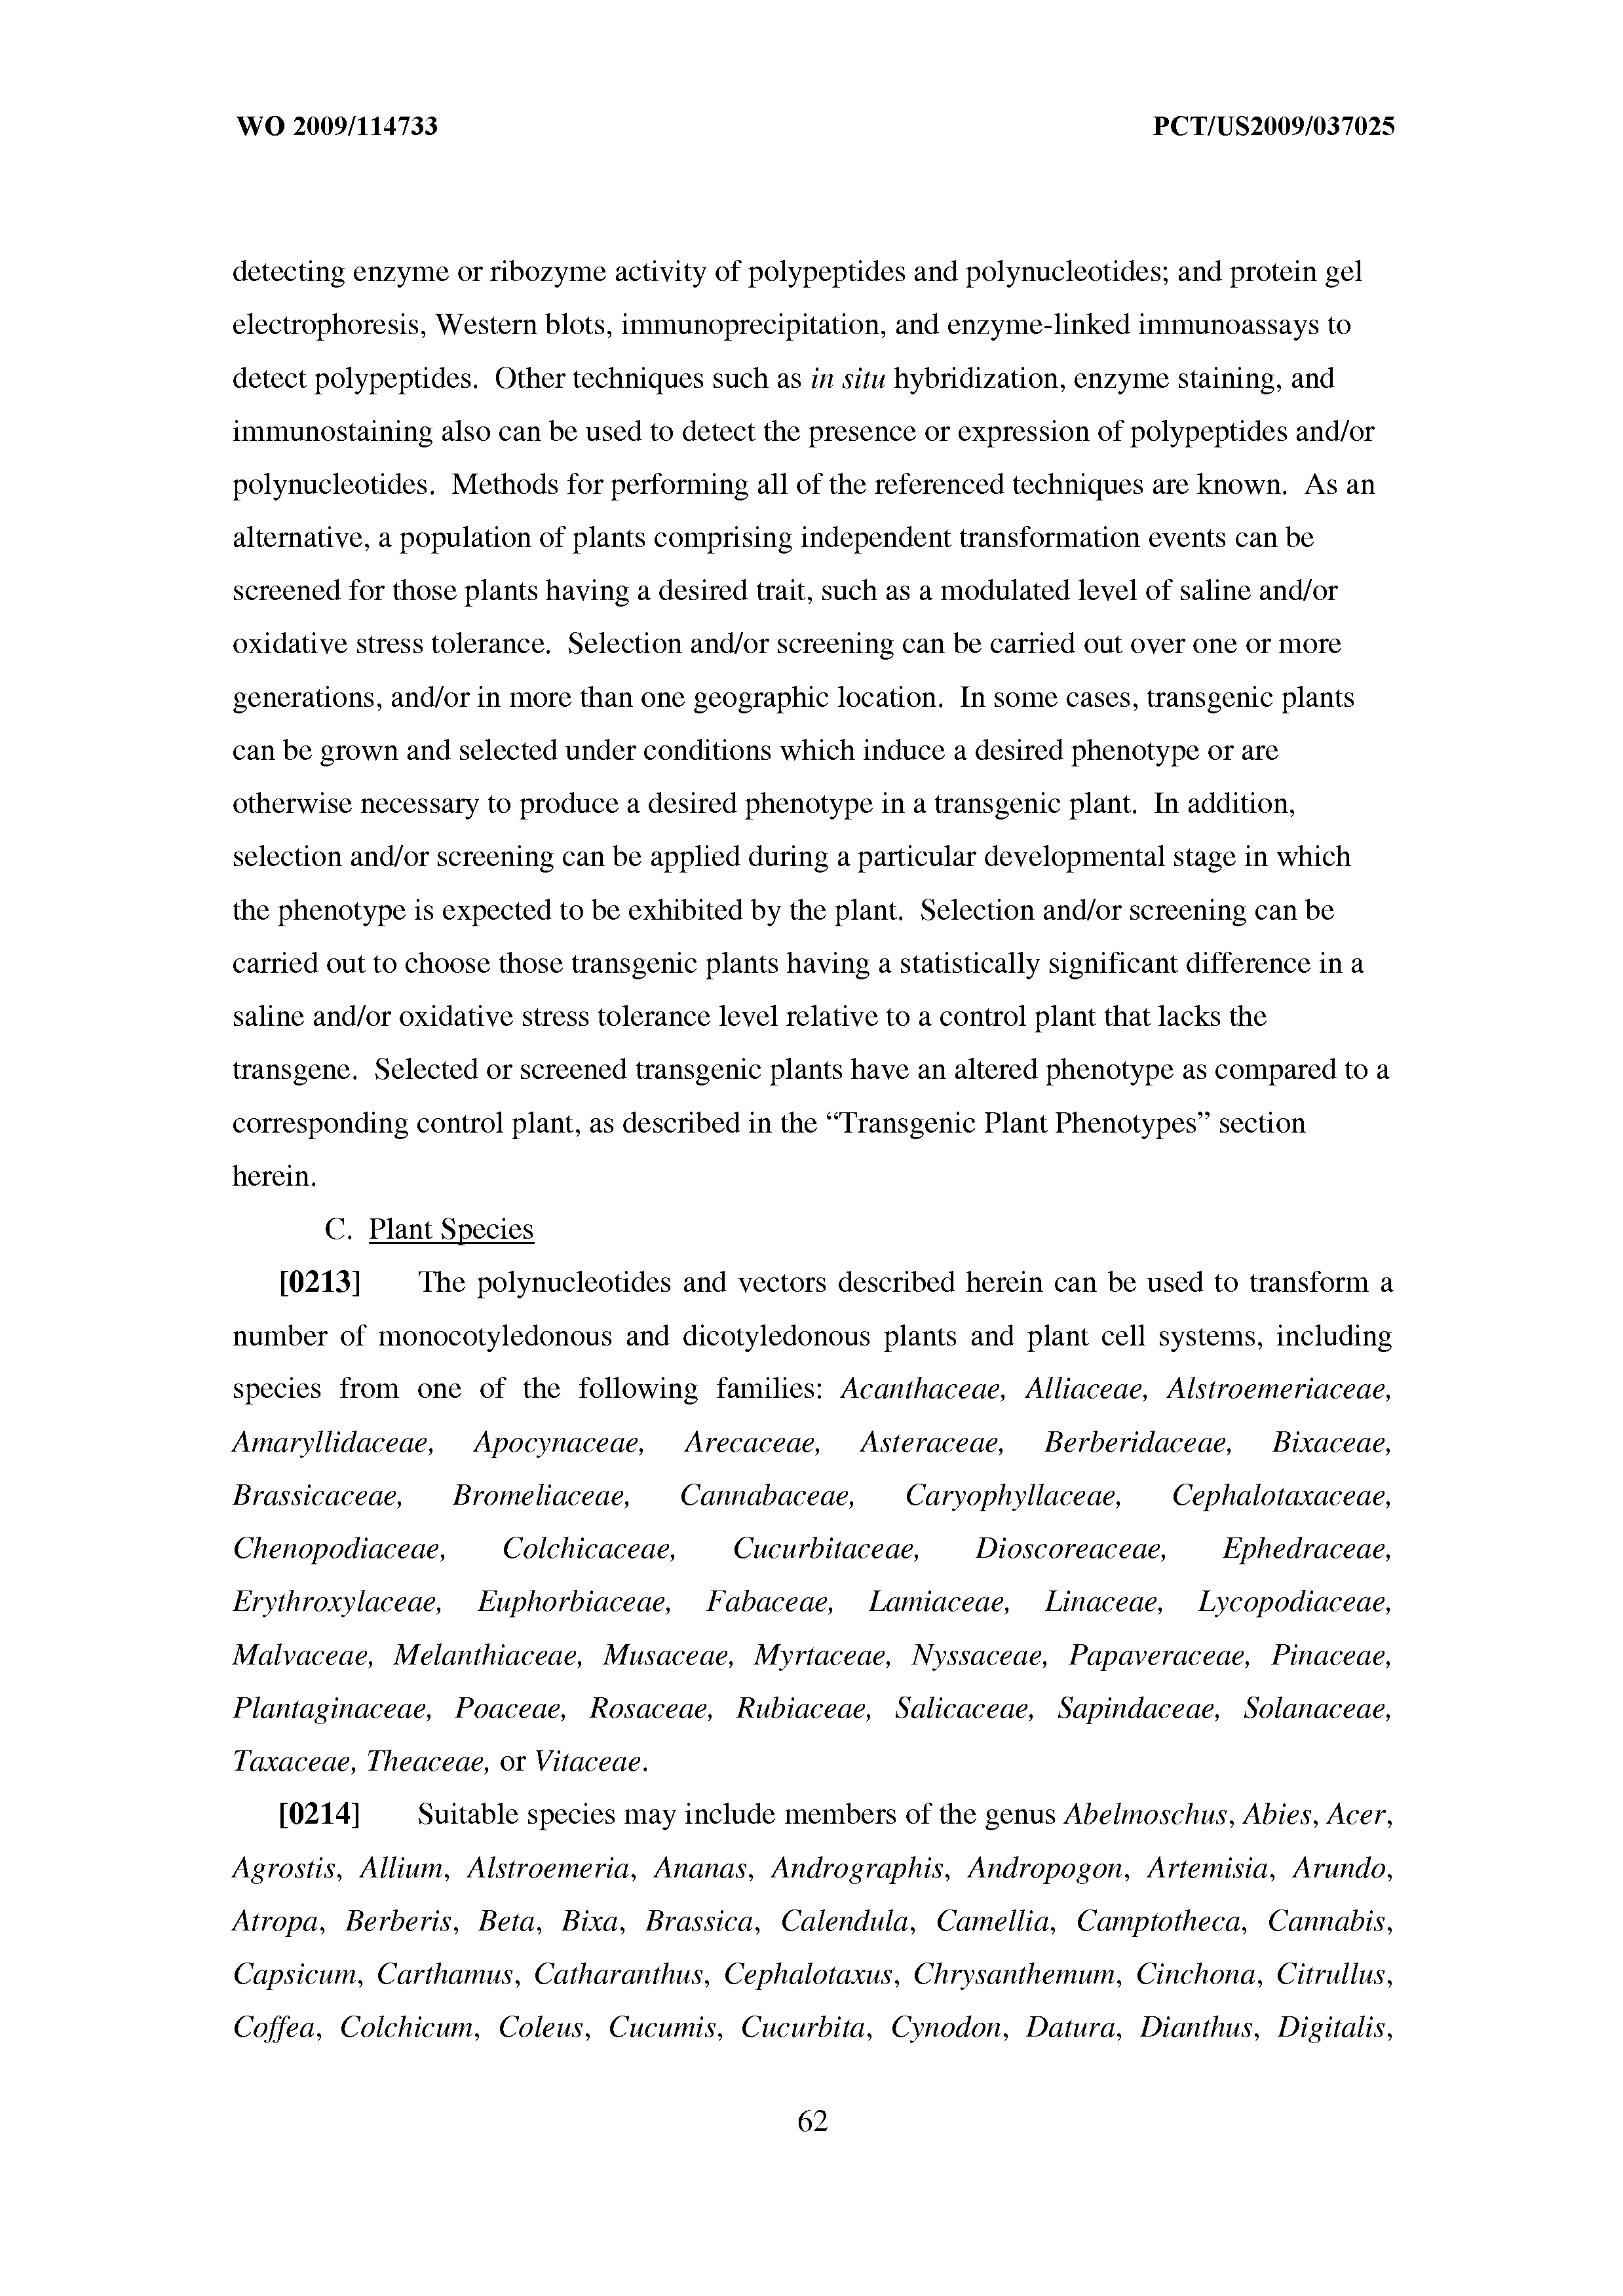 WO 2009/114733 A2 - Nucleotide Sequences And Corresponding